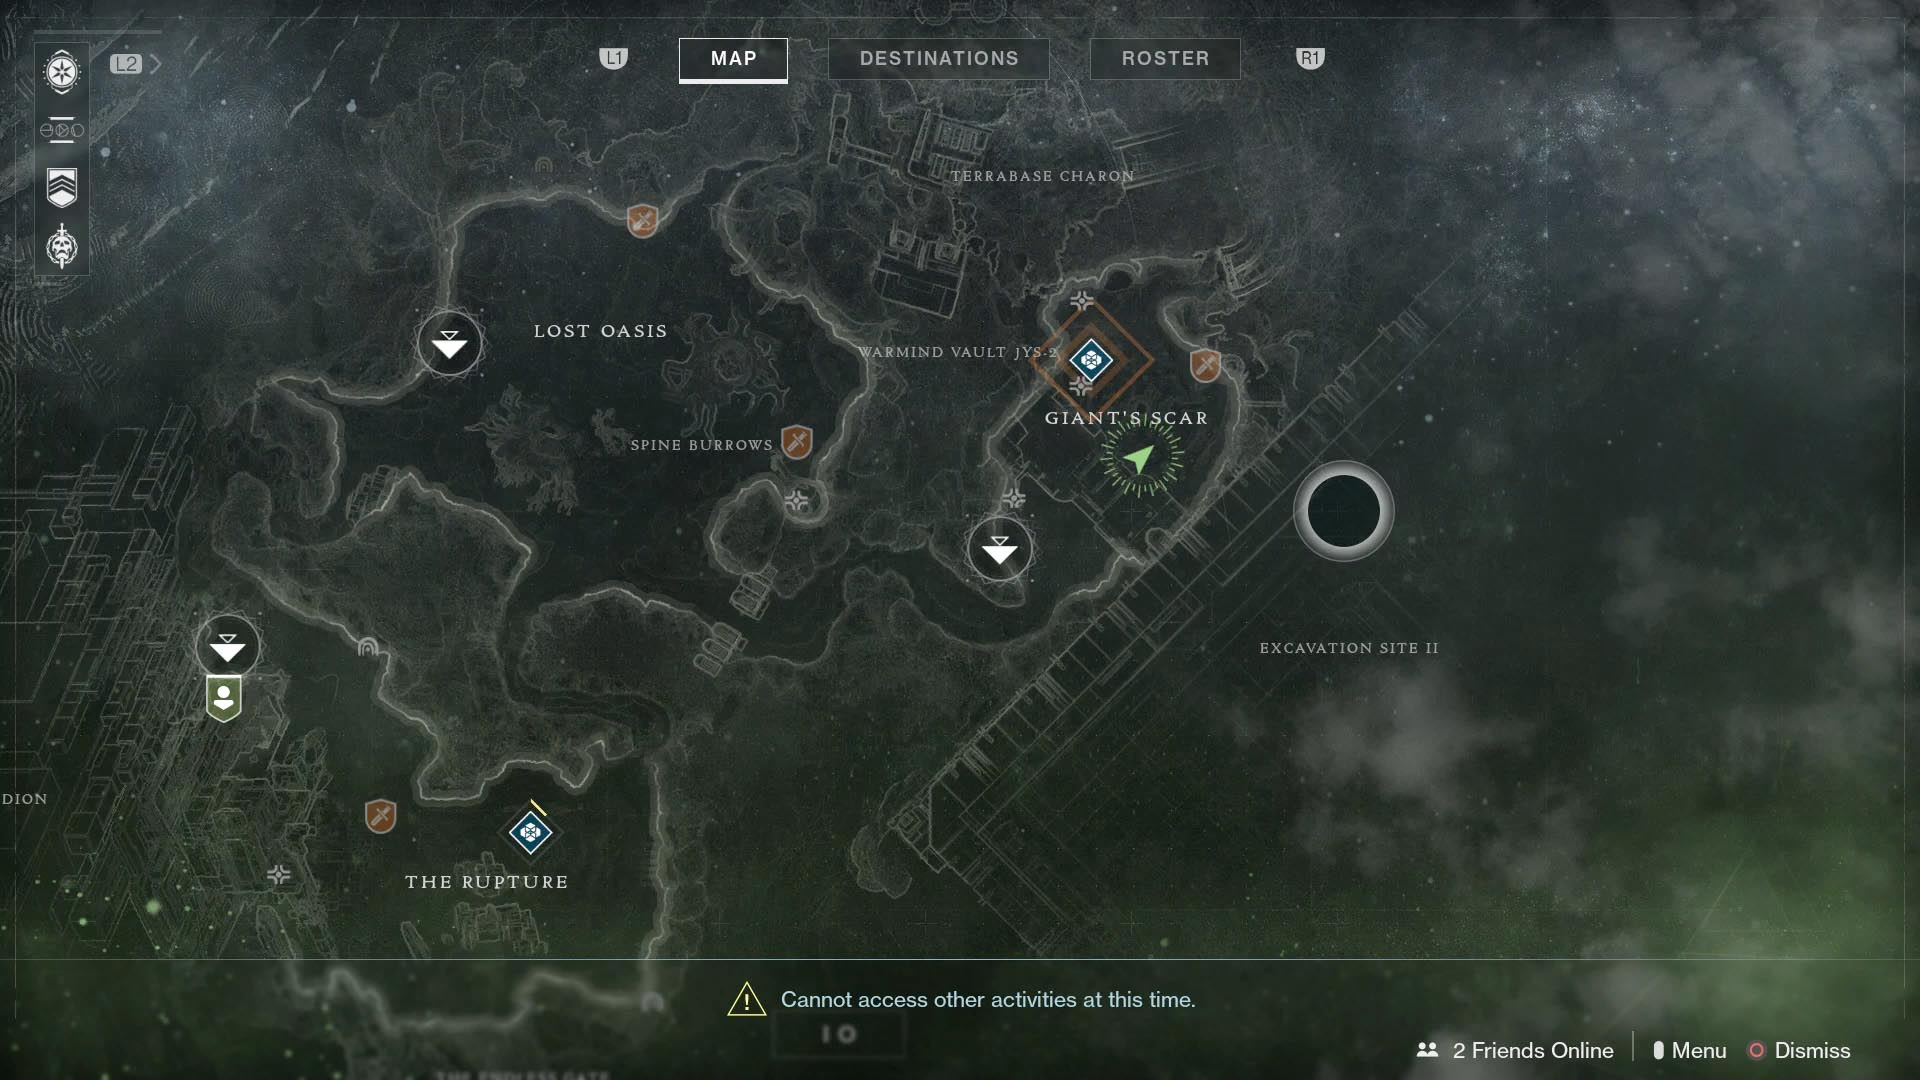 1dc6700c0e1 Destiny 2 guide  Arecibo Io Adventure walkthrough - Polygon